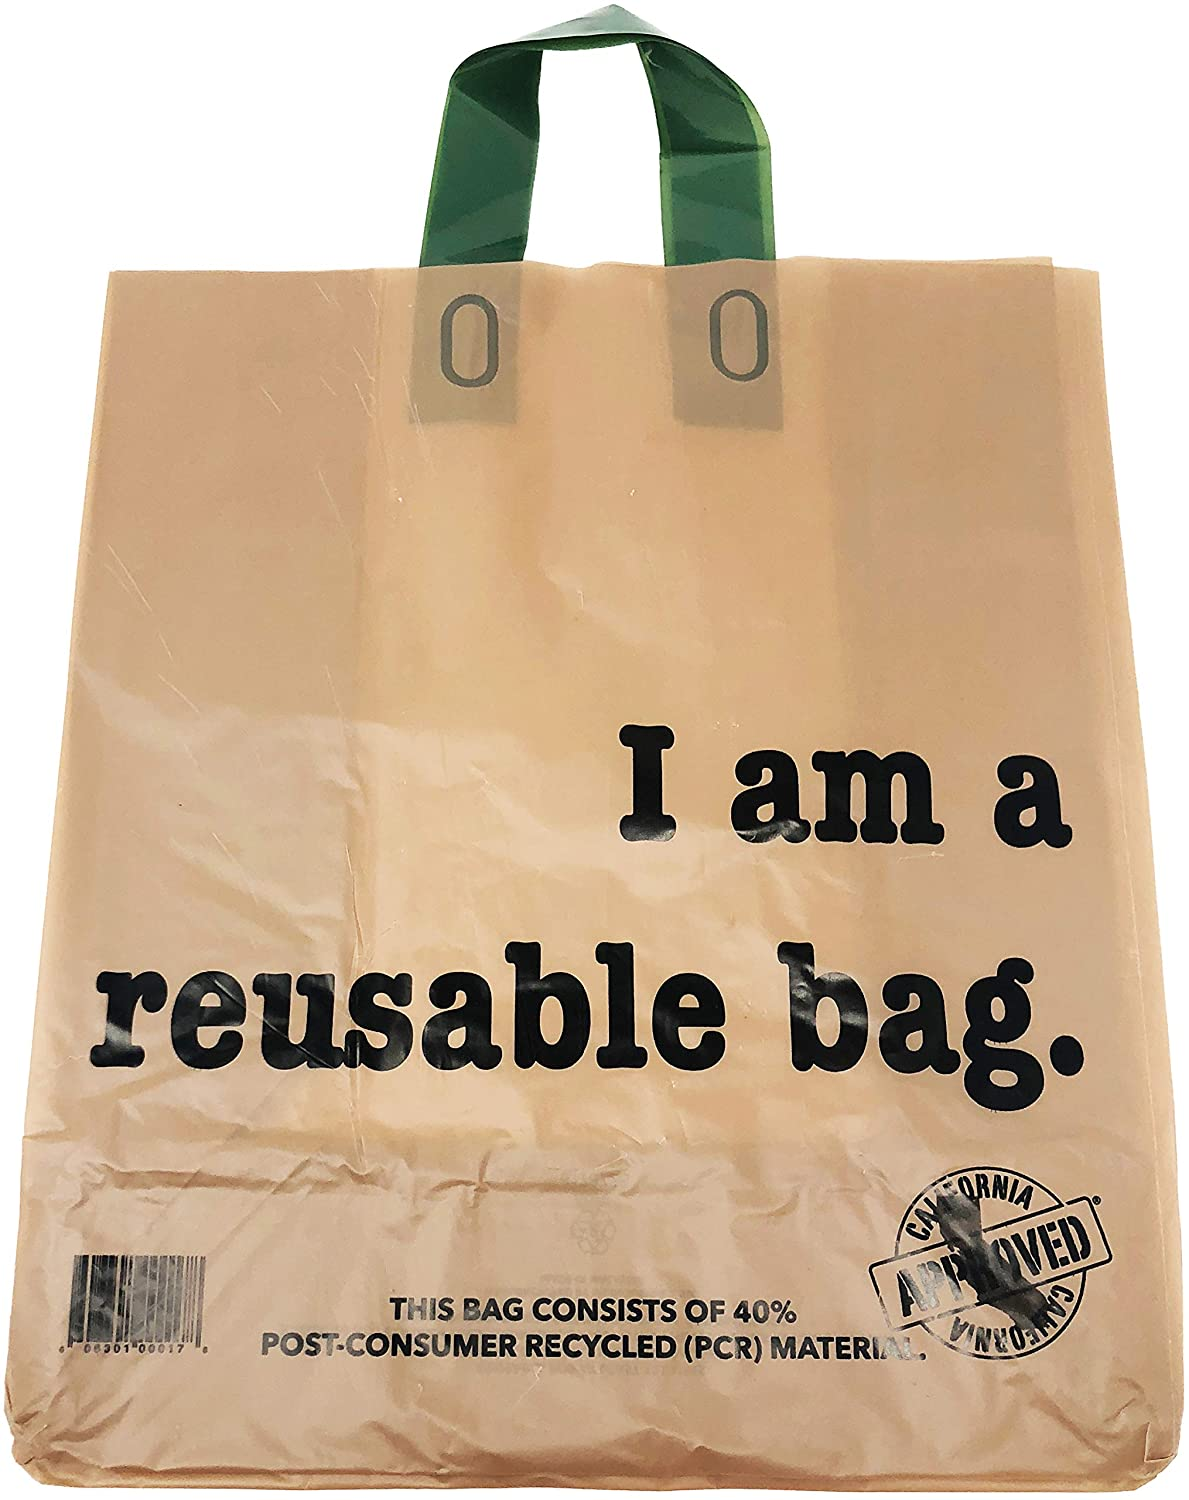 Reli. Shopping Bags, Reusable (250 Count Bulk; 2.25 mil Thick) Kraft Shopping Bags for Restaurant, Take Out, Retail, Grocery - Recyclable Shopping Bags (12